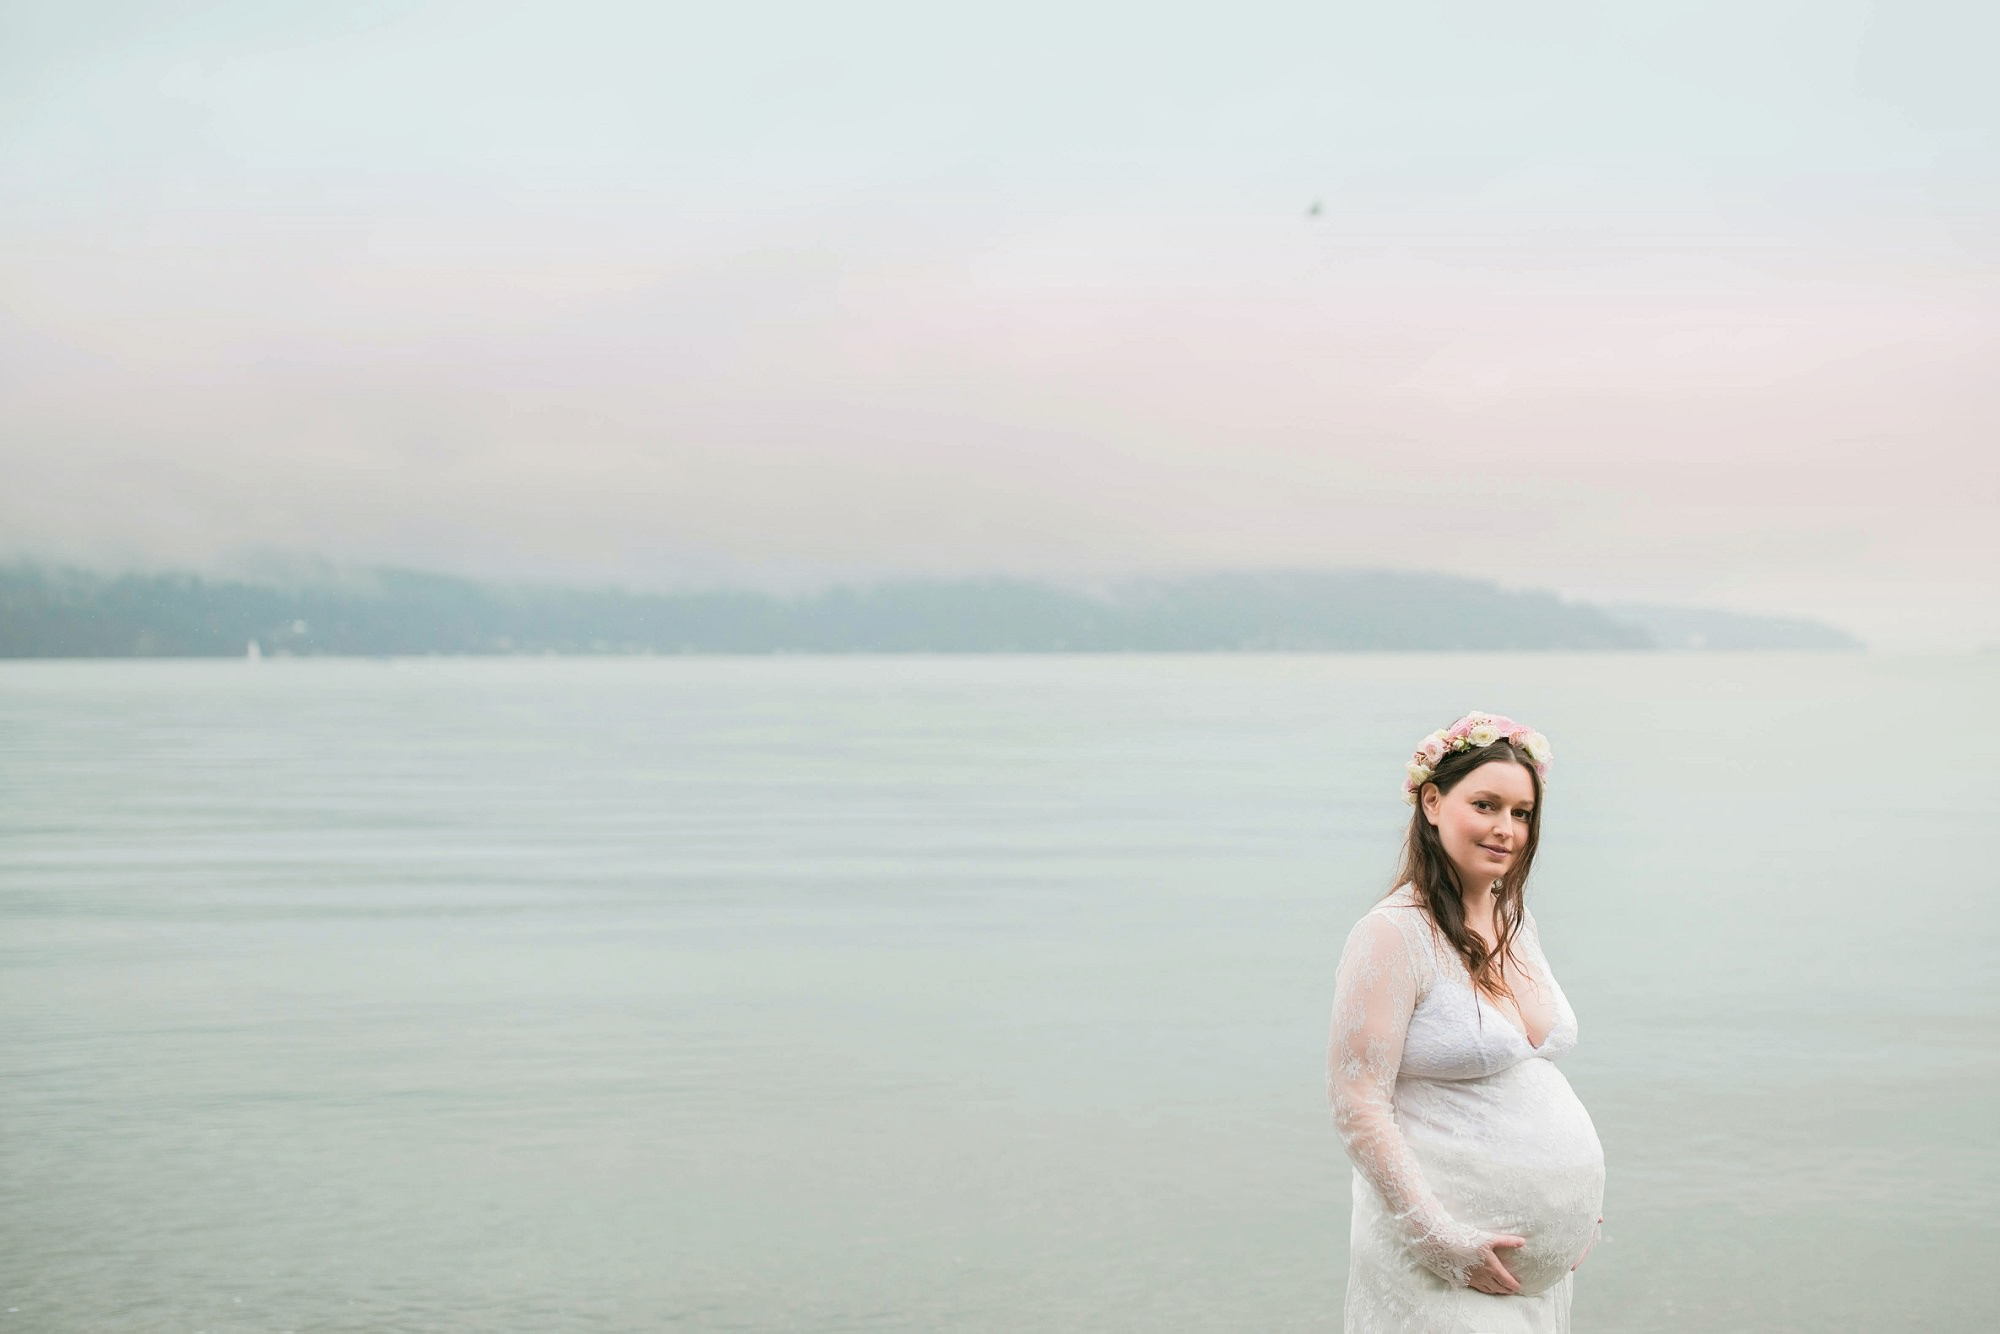 Pregnant Woman Wearing Floral Crown On The Beach